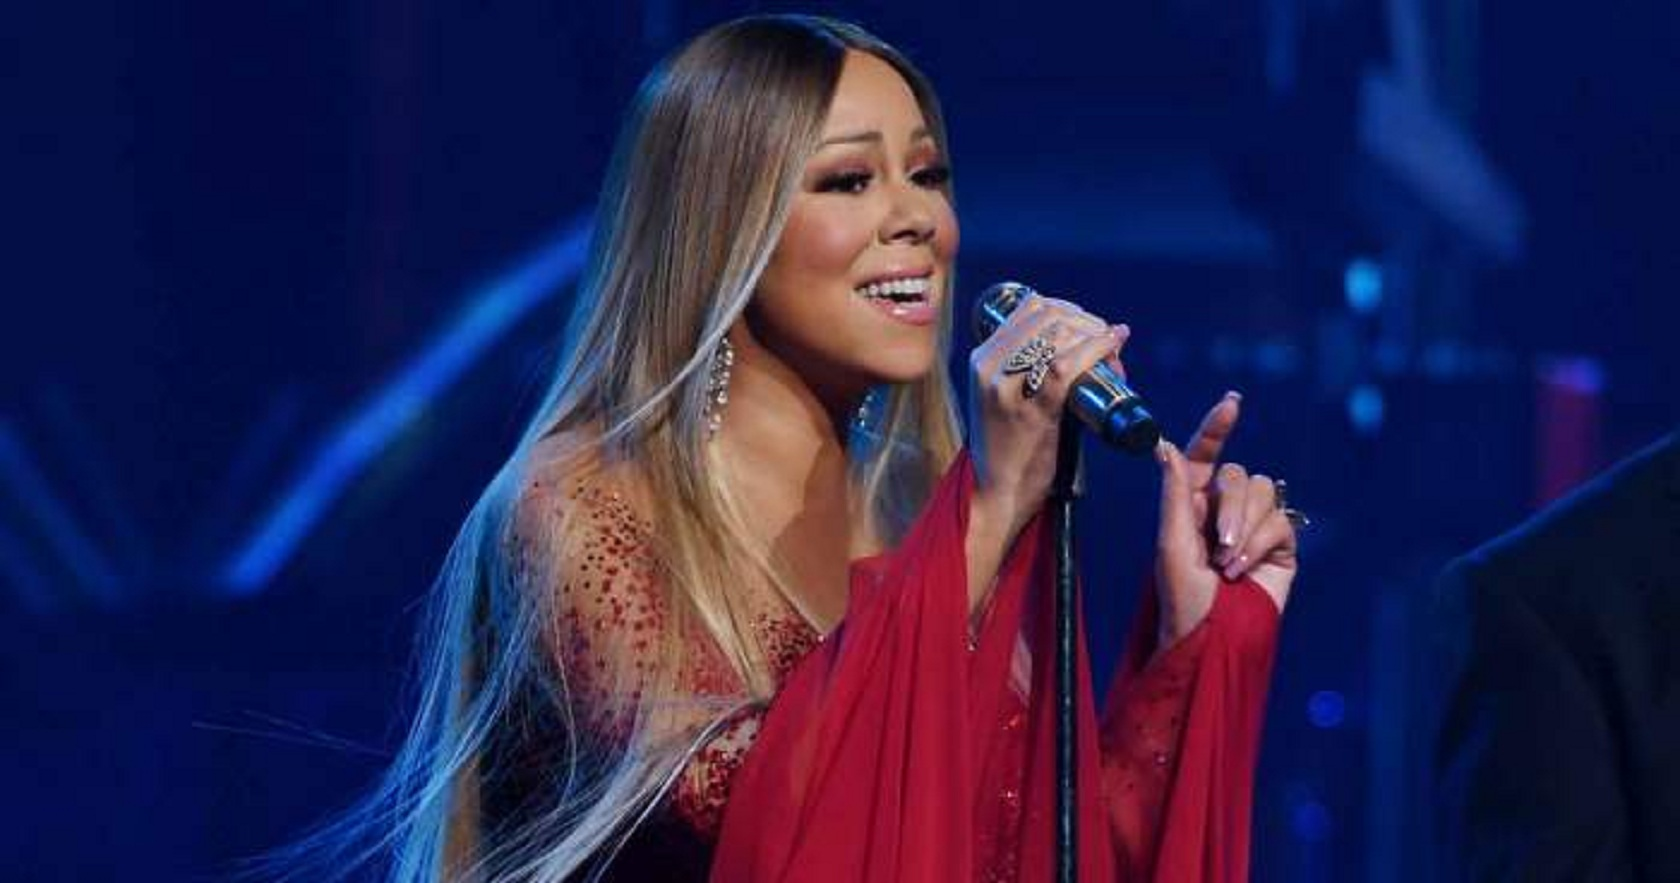 Mariah Carey's 5 Best Performances from 2018 – So far!